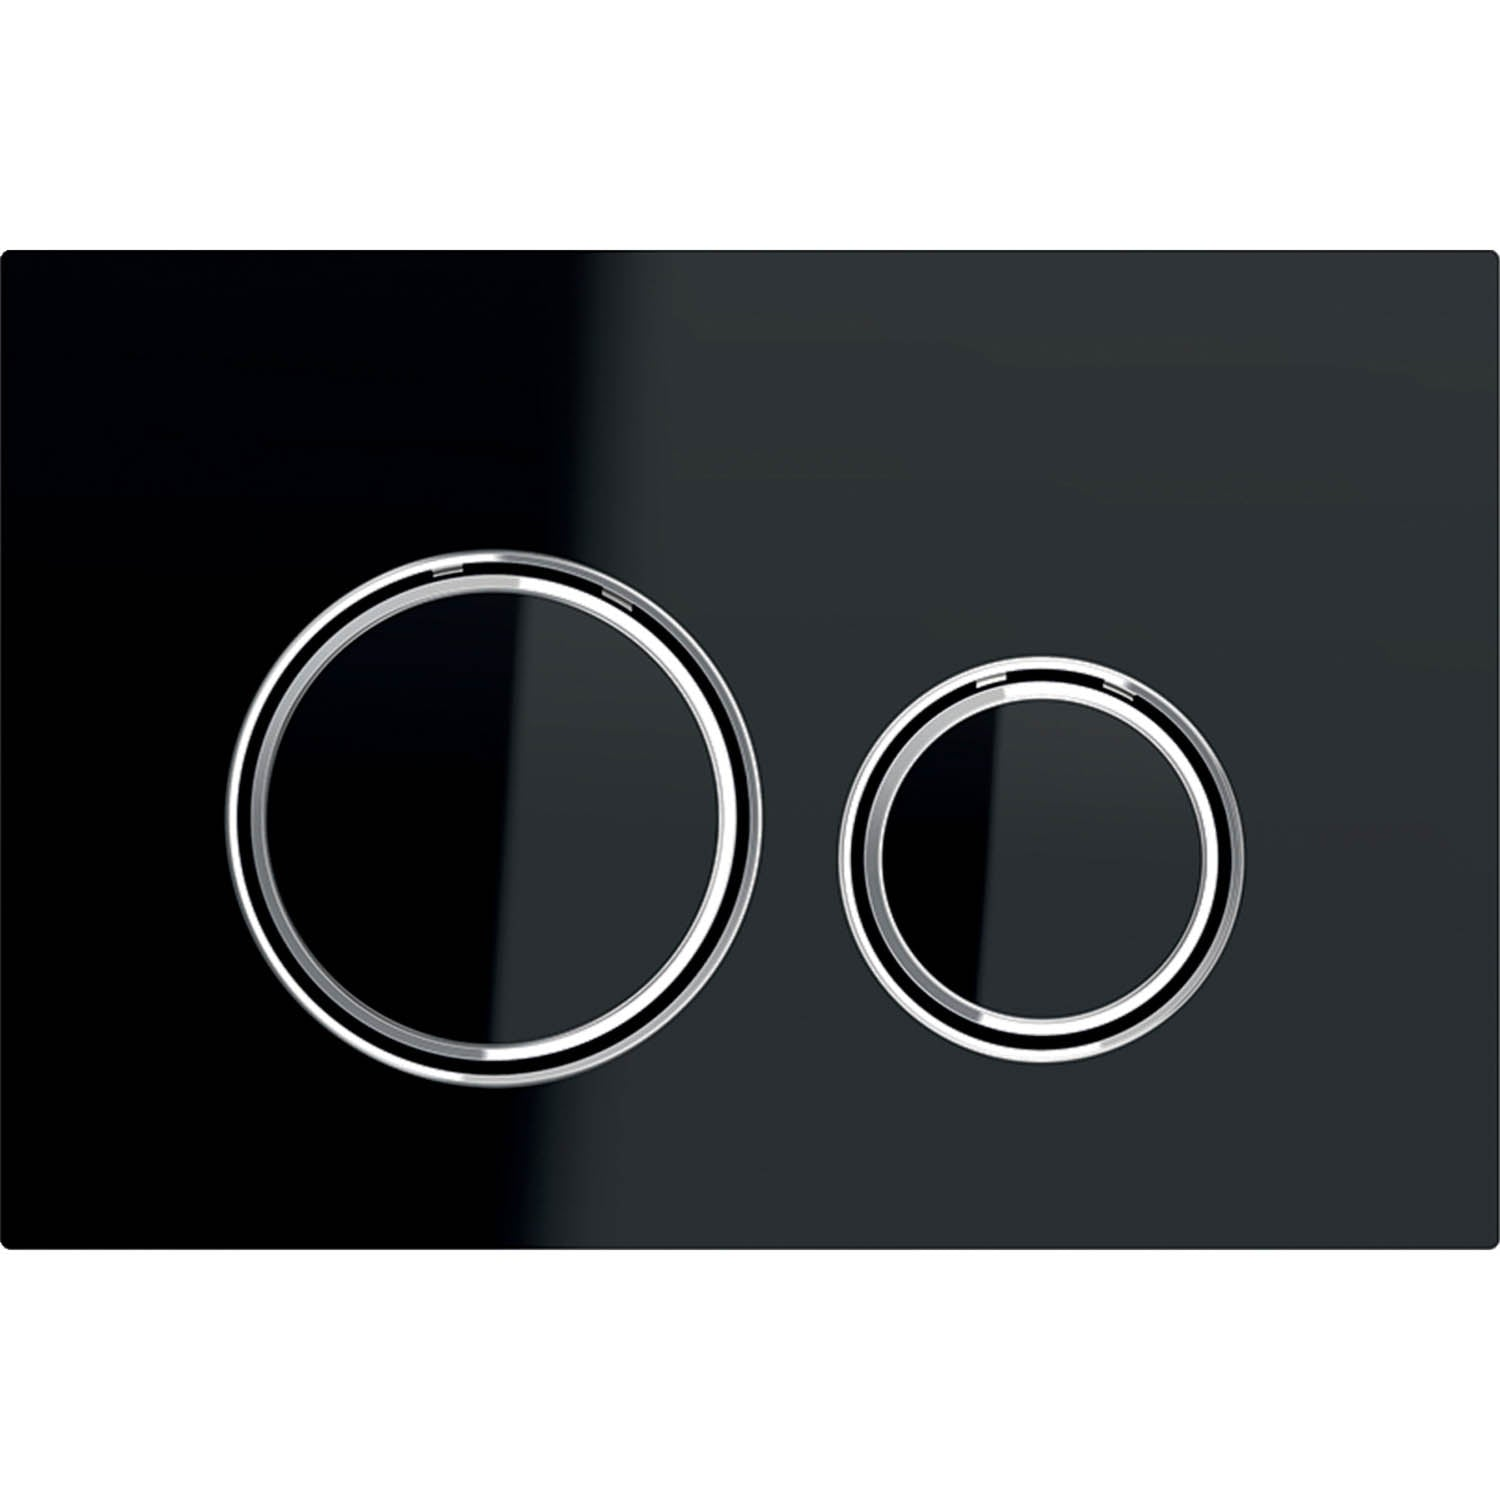 Sigma Round Dual Action Flush Plate with a black glass and chrome finish on a white background